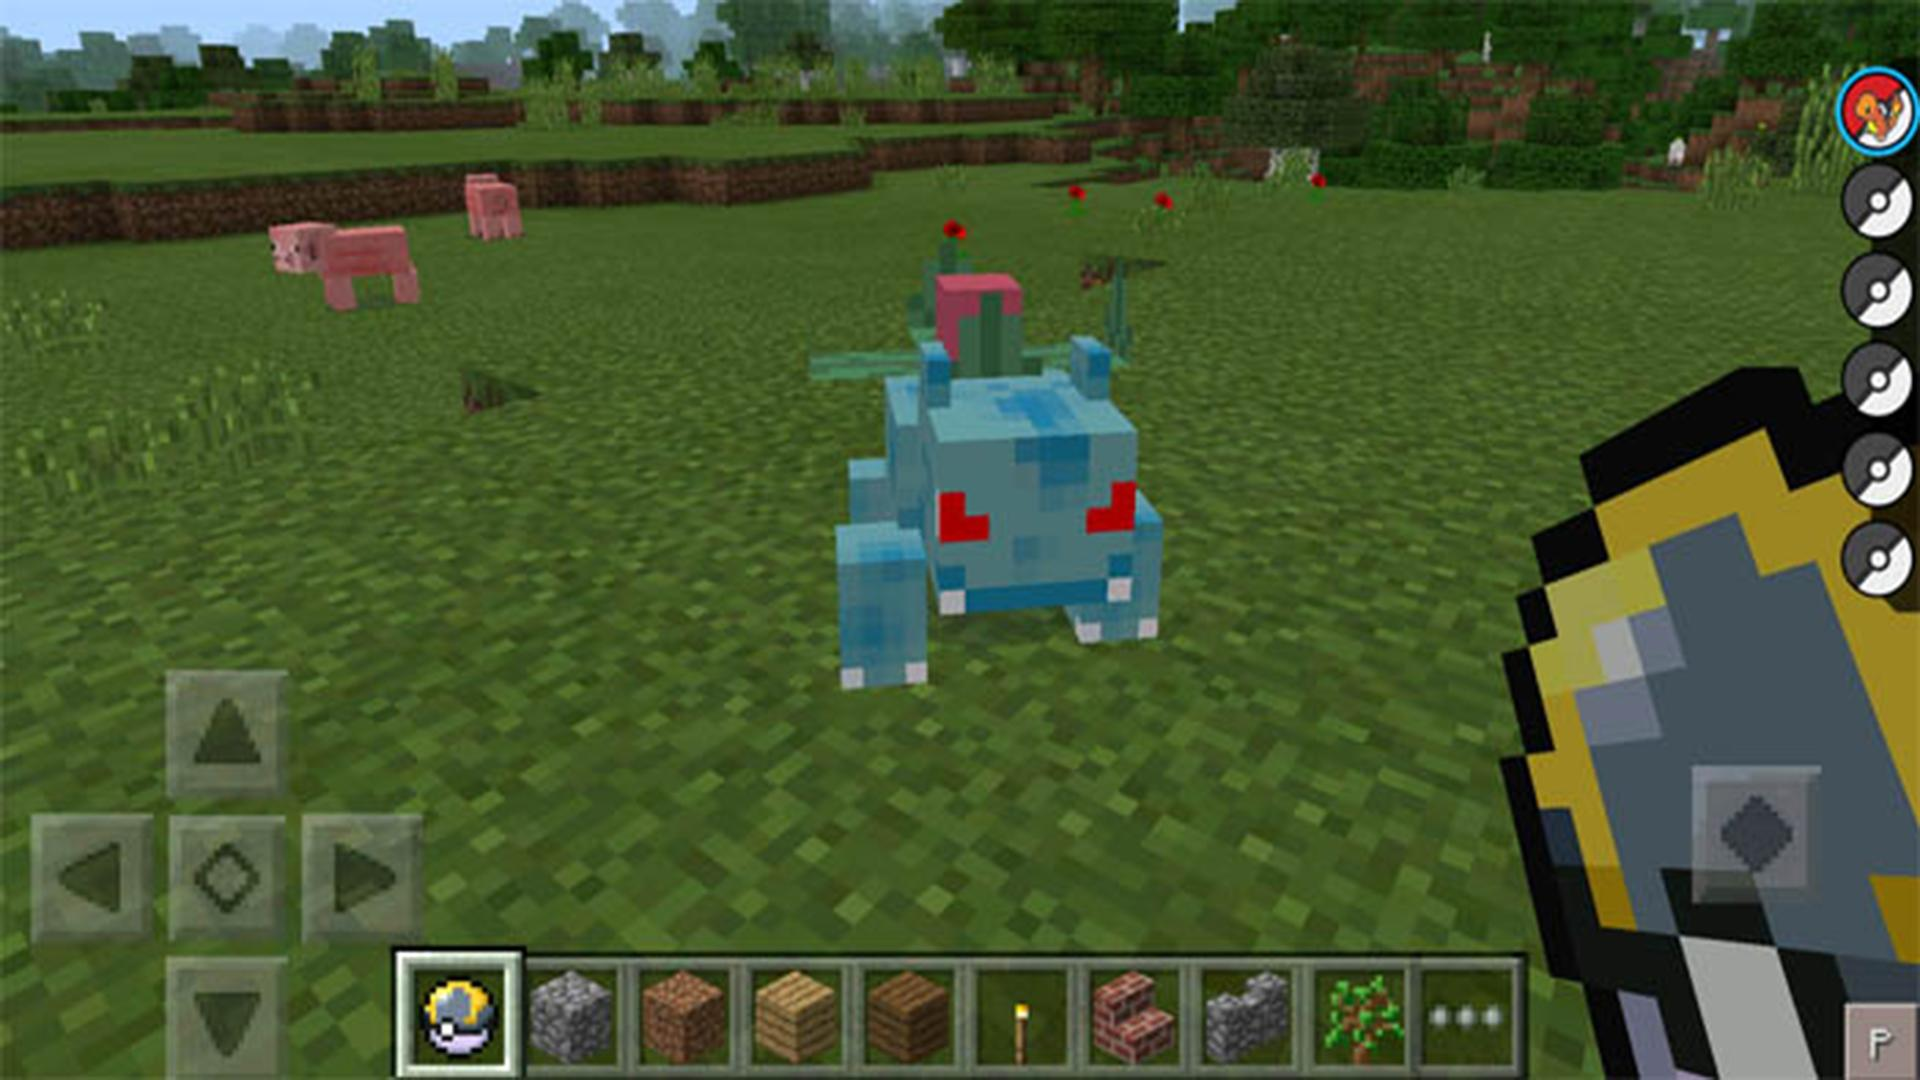 Free Mixcraft Pixelmon Mod for Minecraft PE for Android - APK Download